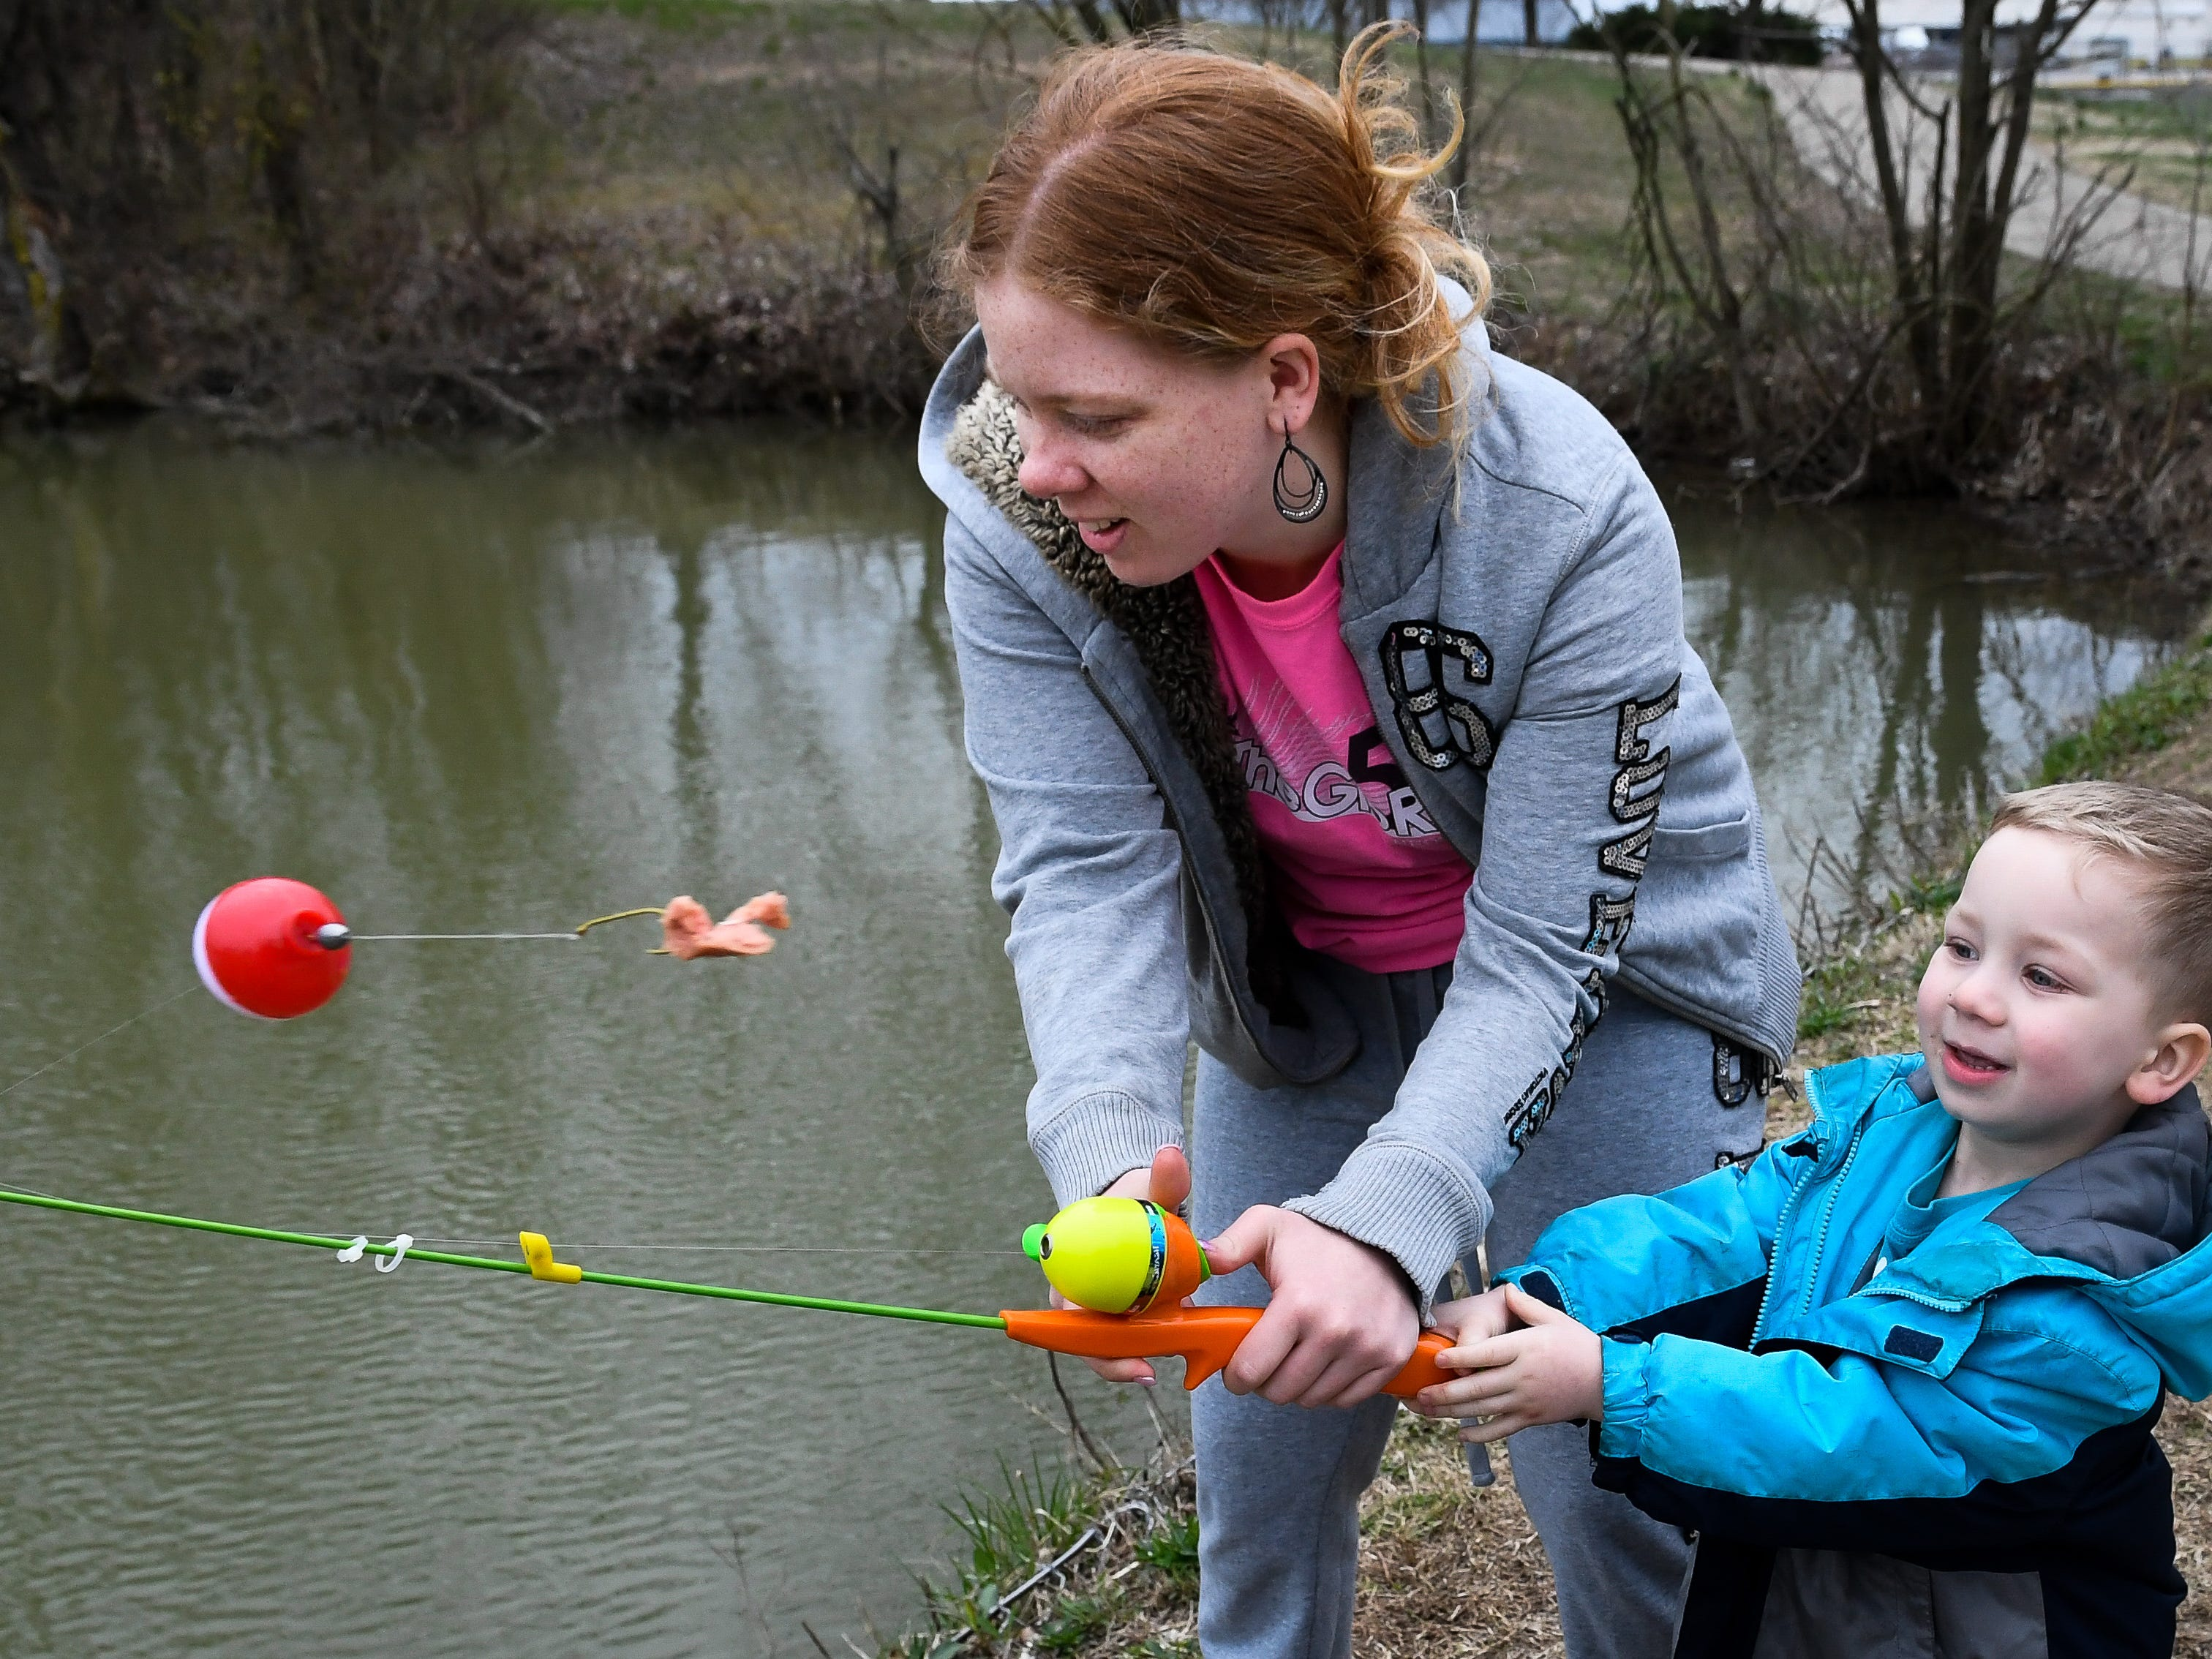 Mastering the art of the cast, Yesenia Deleon helps Kayden Kress, three years-old, launch his piece of hotdog out into the lake at Evansville's Garvin Park during a family fishing trip Friday on the last day of spring break, March 29, 2019.